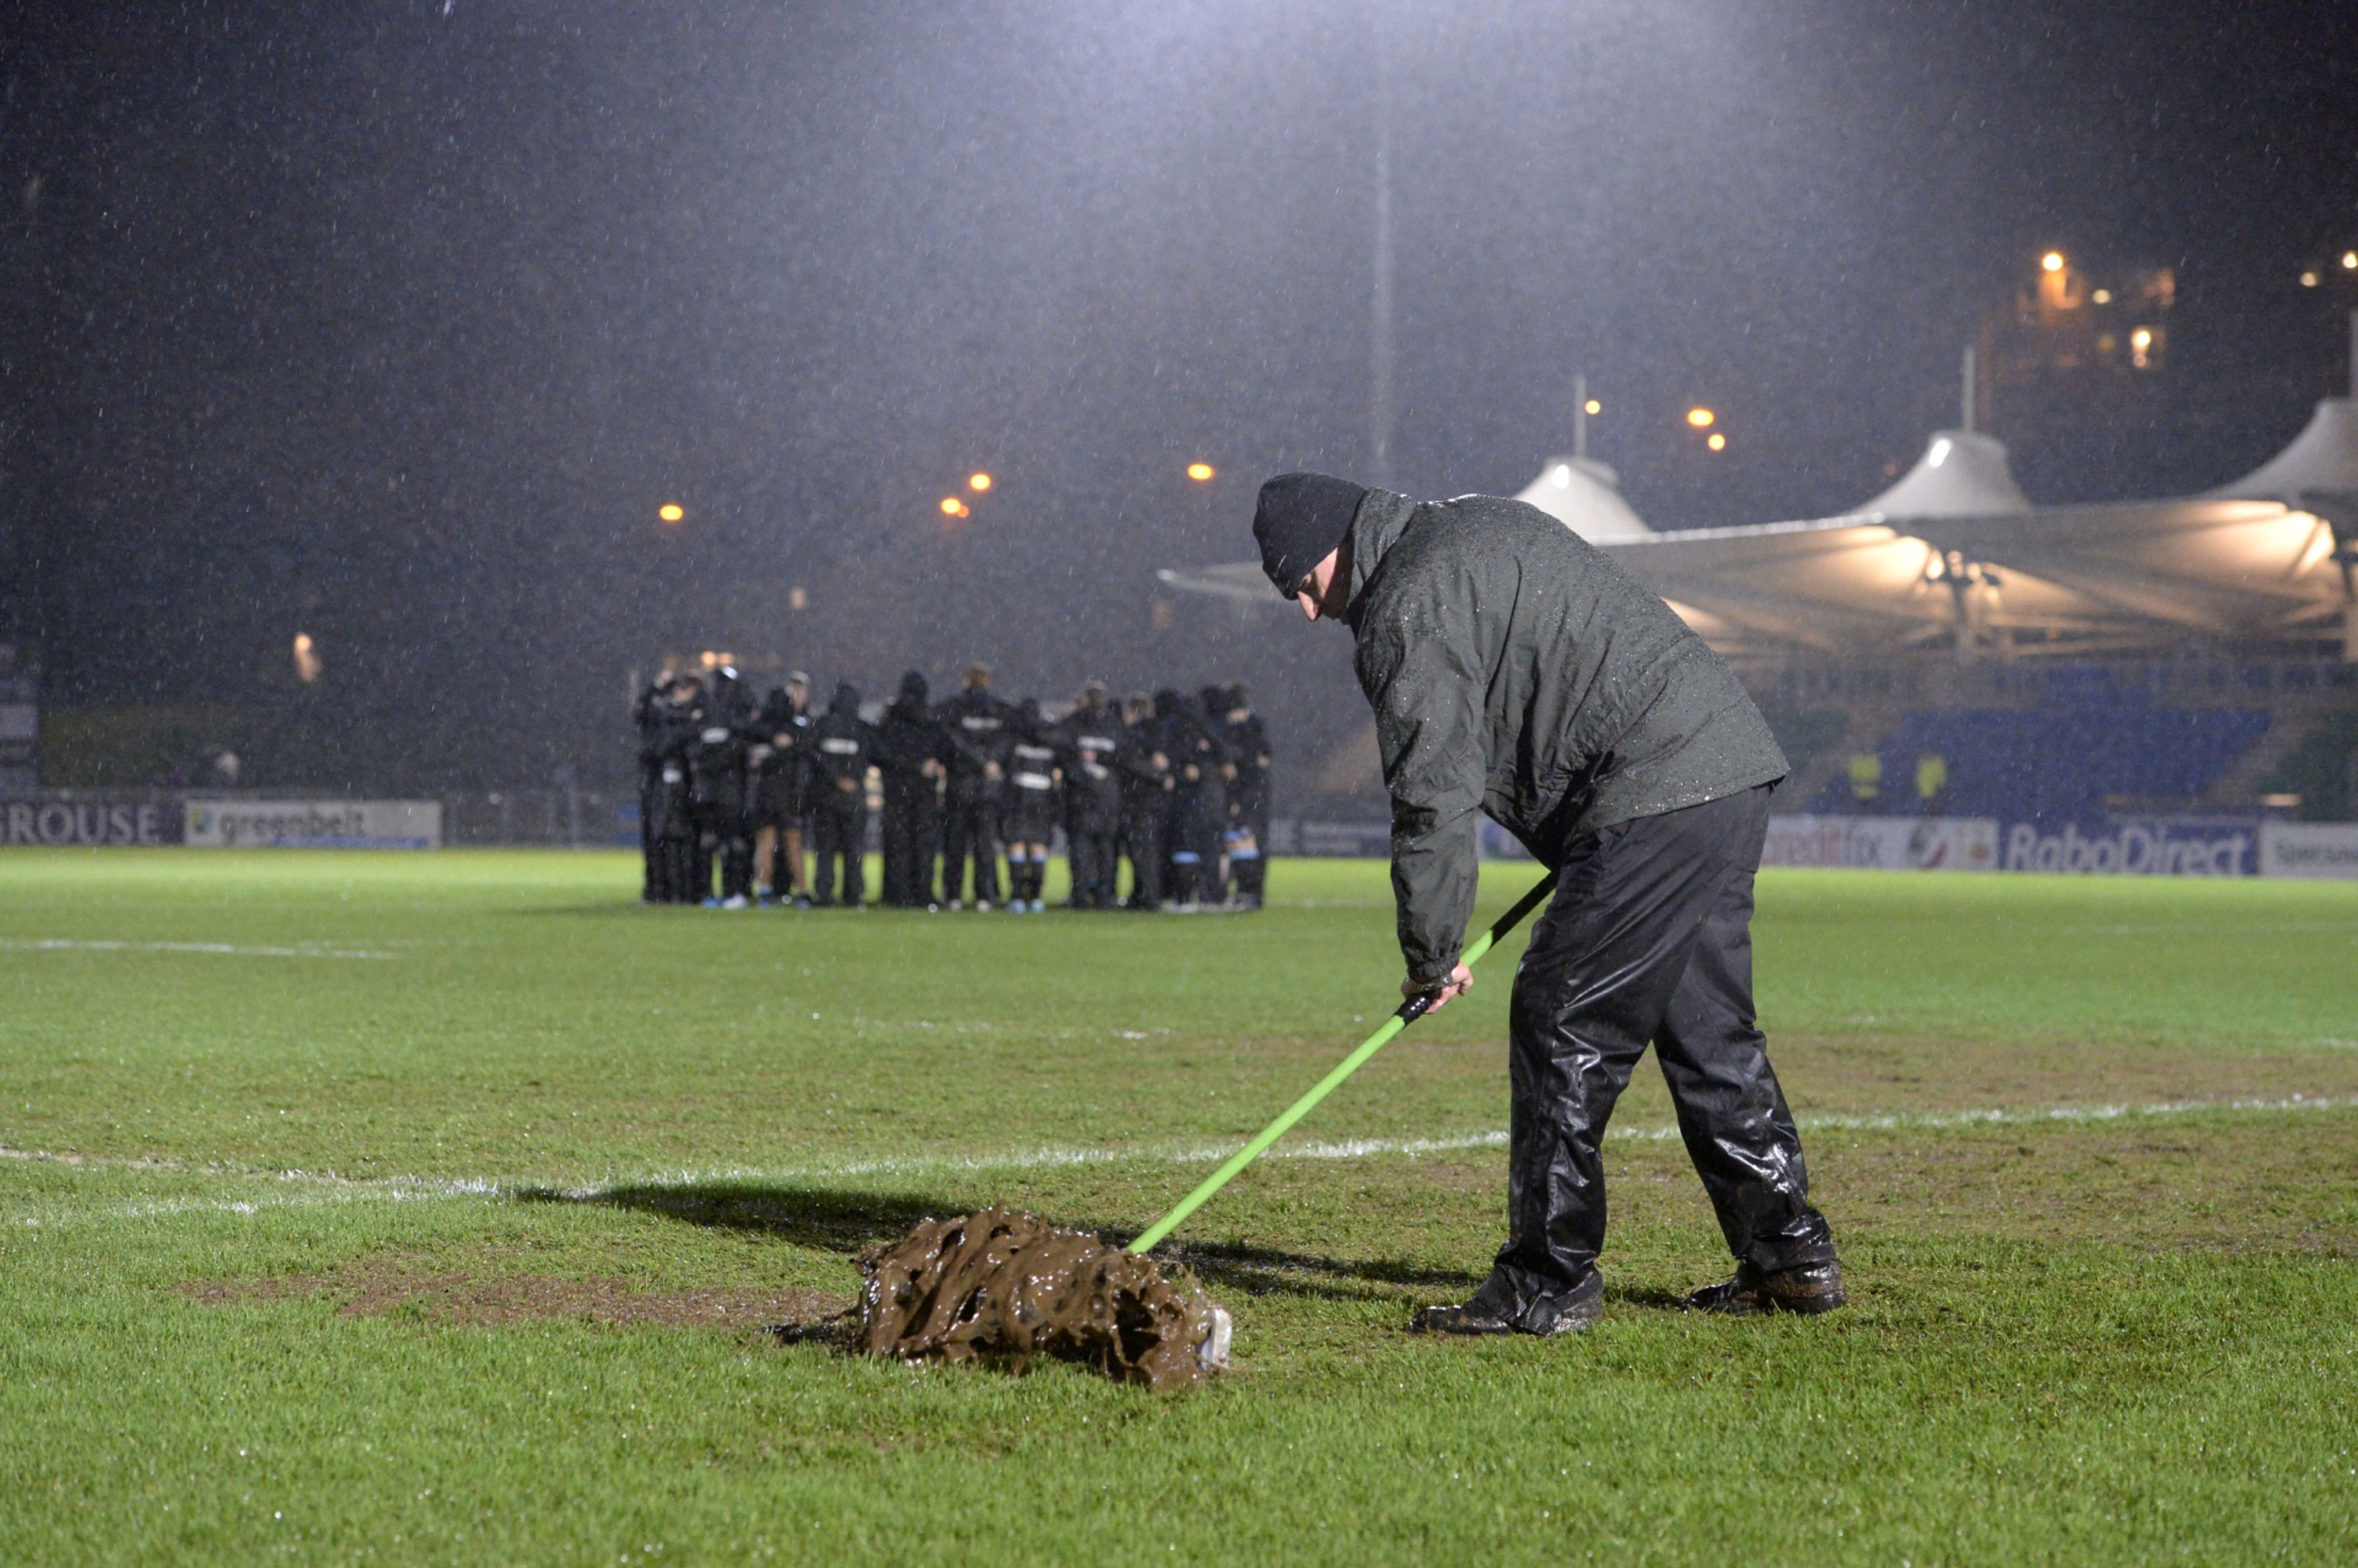 Scotstoun's existing grass pitch has been prone to flooding and postponements.